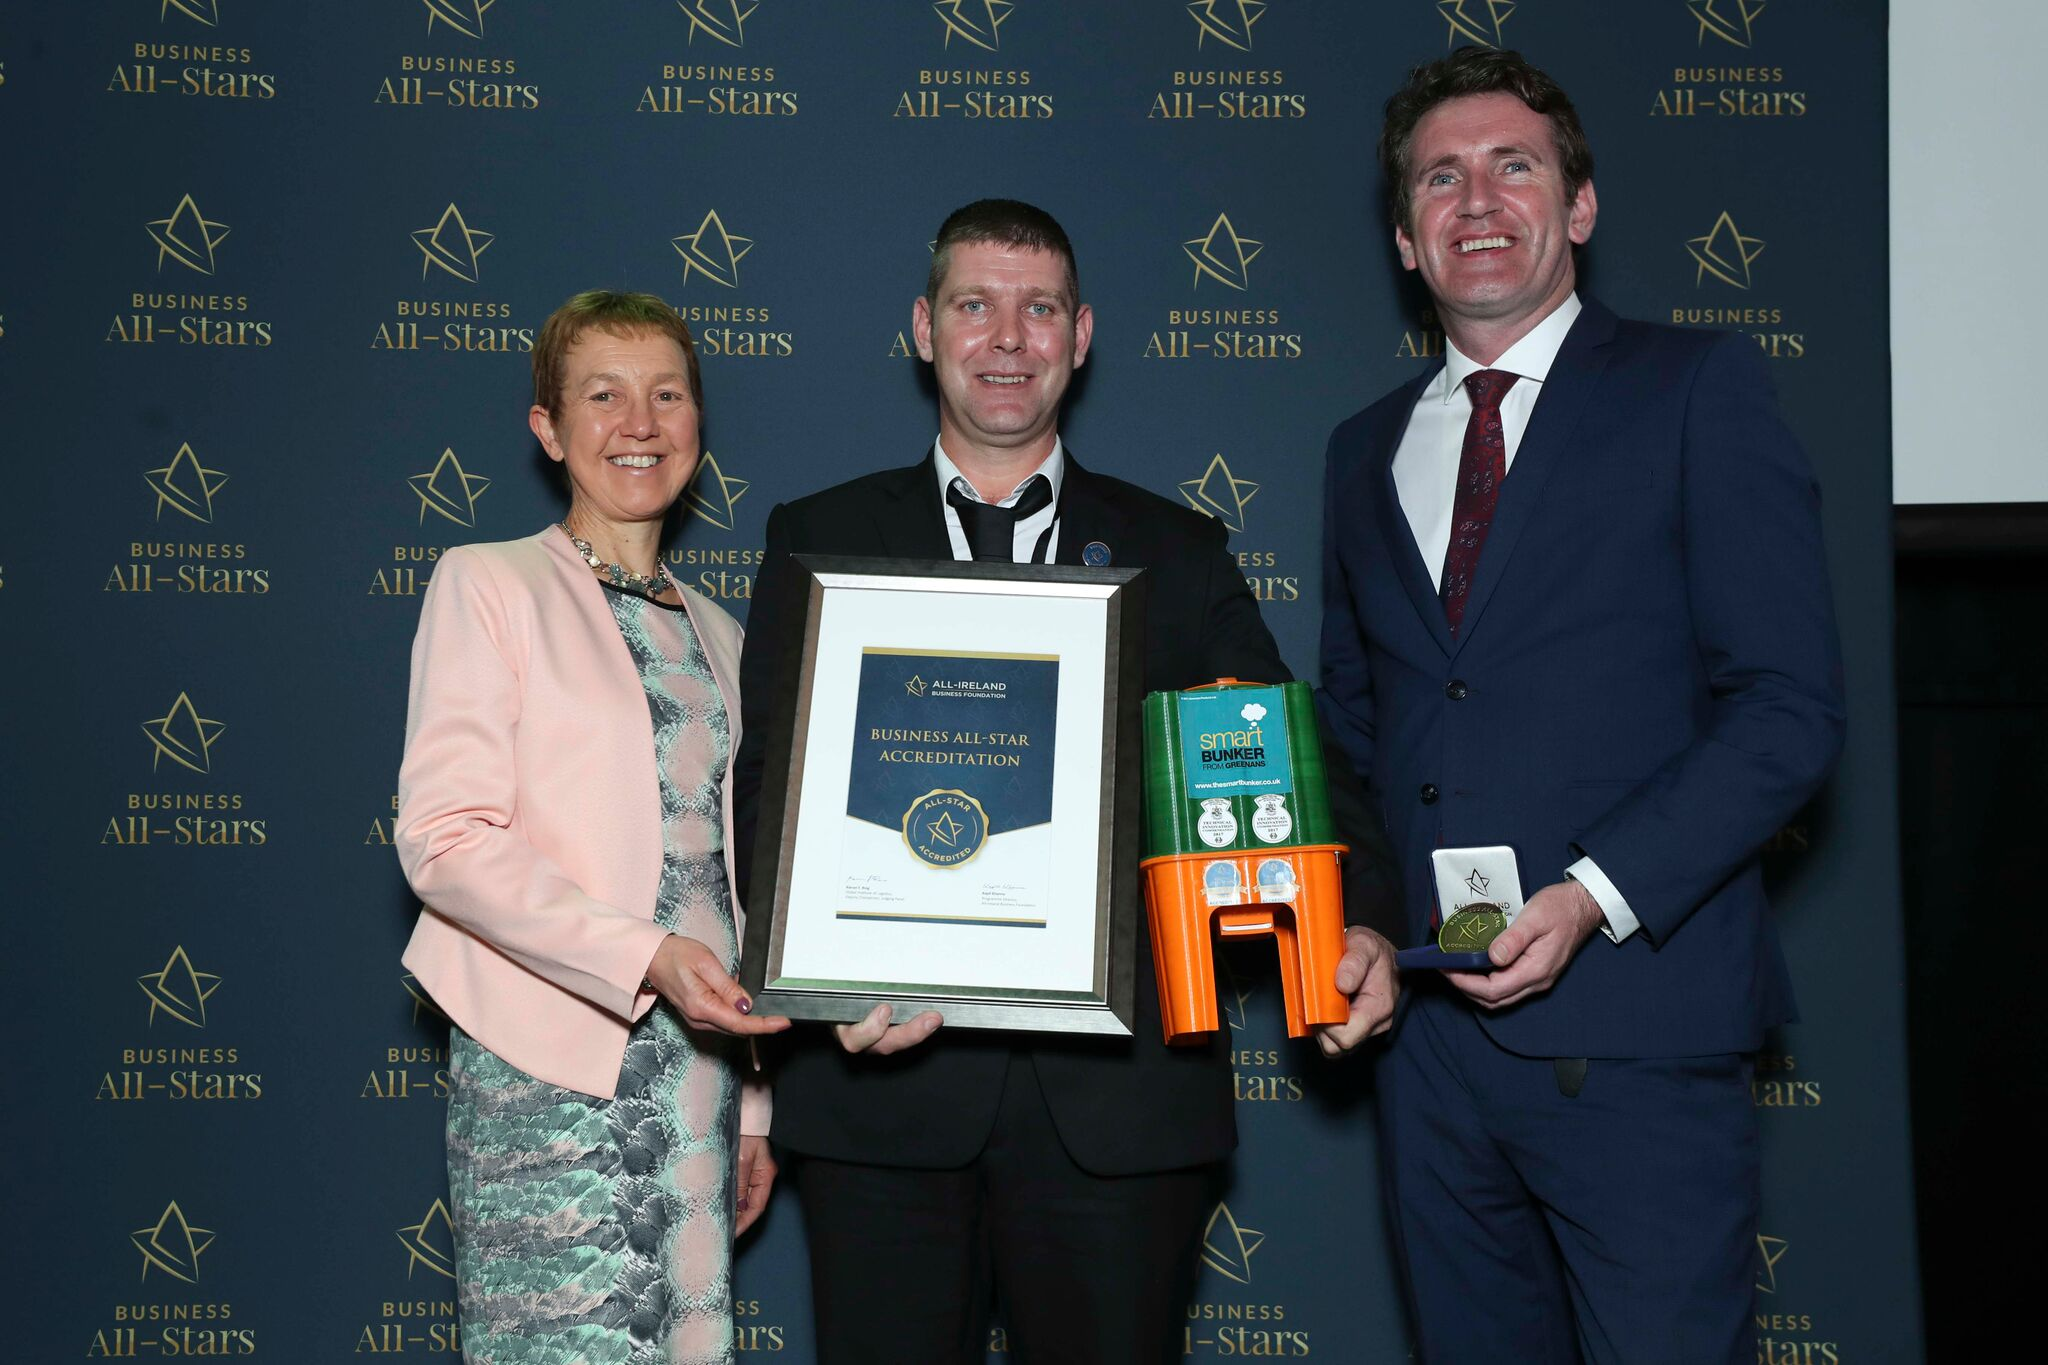 Niall Grennan - The Smart Bunker receiving Business All-Star Accreditation at Croke Park from Dr Briga Hynes, Kemmy Business School, University of Limerick and Senator Aodhán Ó Ríordáin, Spokesperson on Education and Skills, Gaeilge and the Gaeltacht.